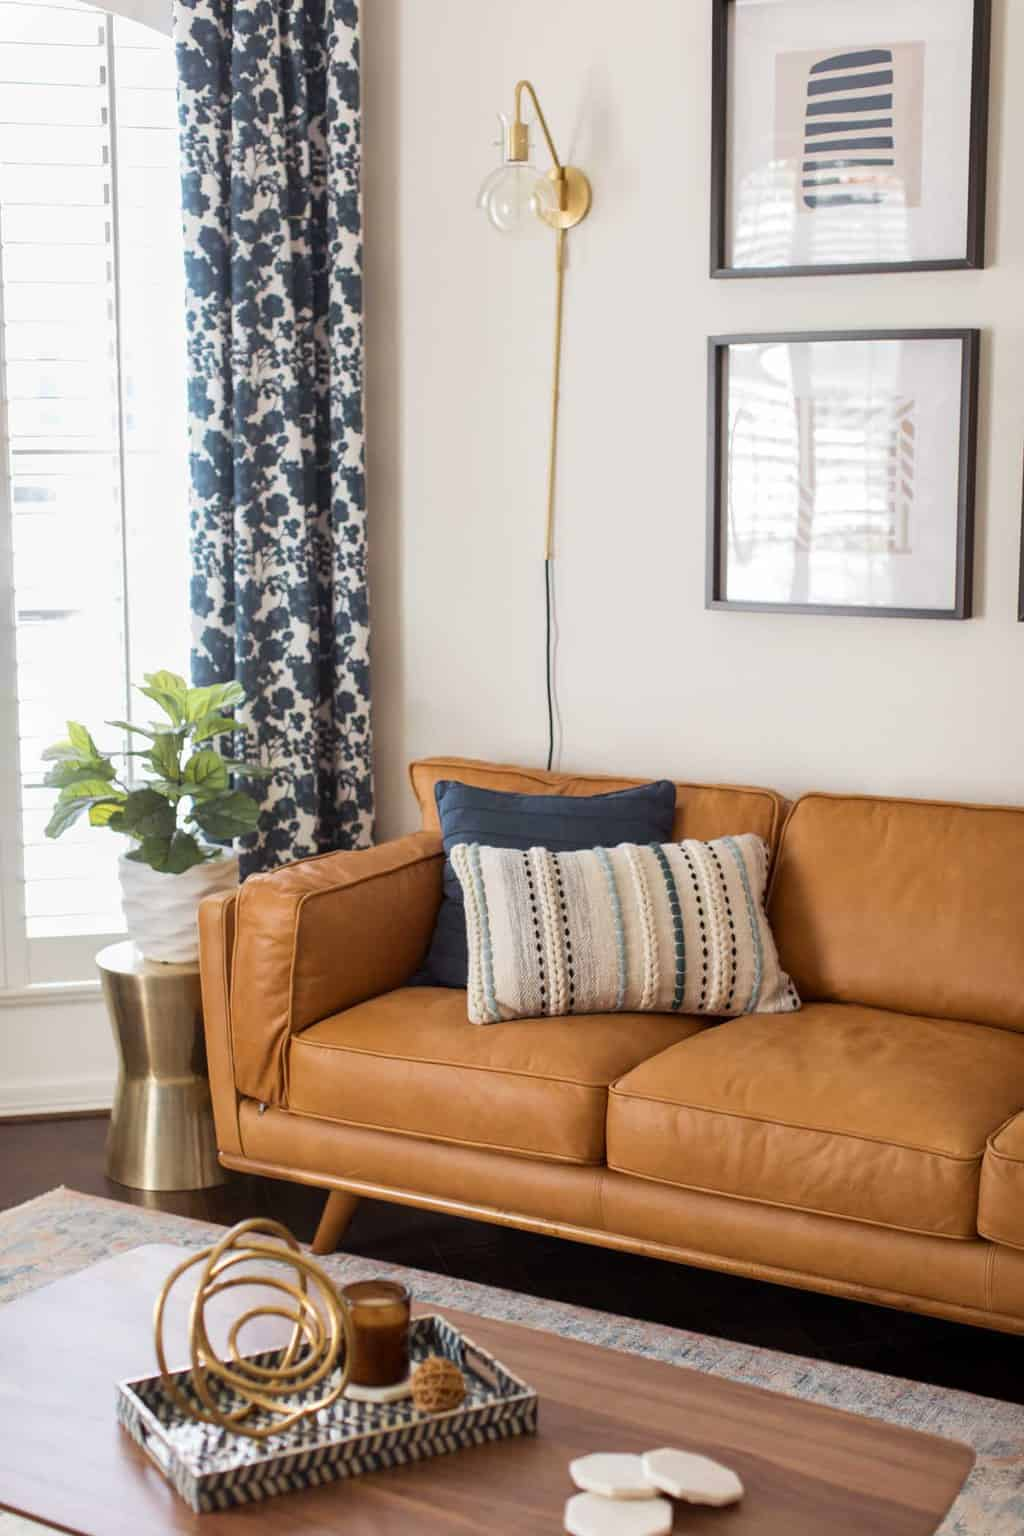 photo of the new modern mid-century couch in the living room makeover by top Houston lifestyle blogger Ashley Rose of Sugar & Cloth